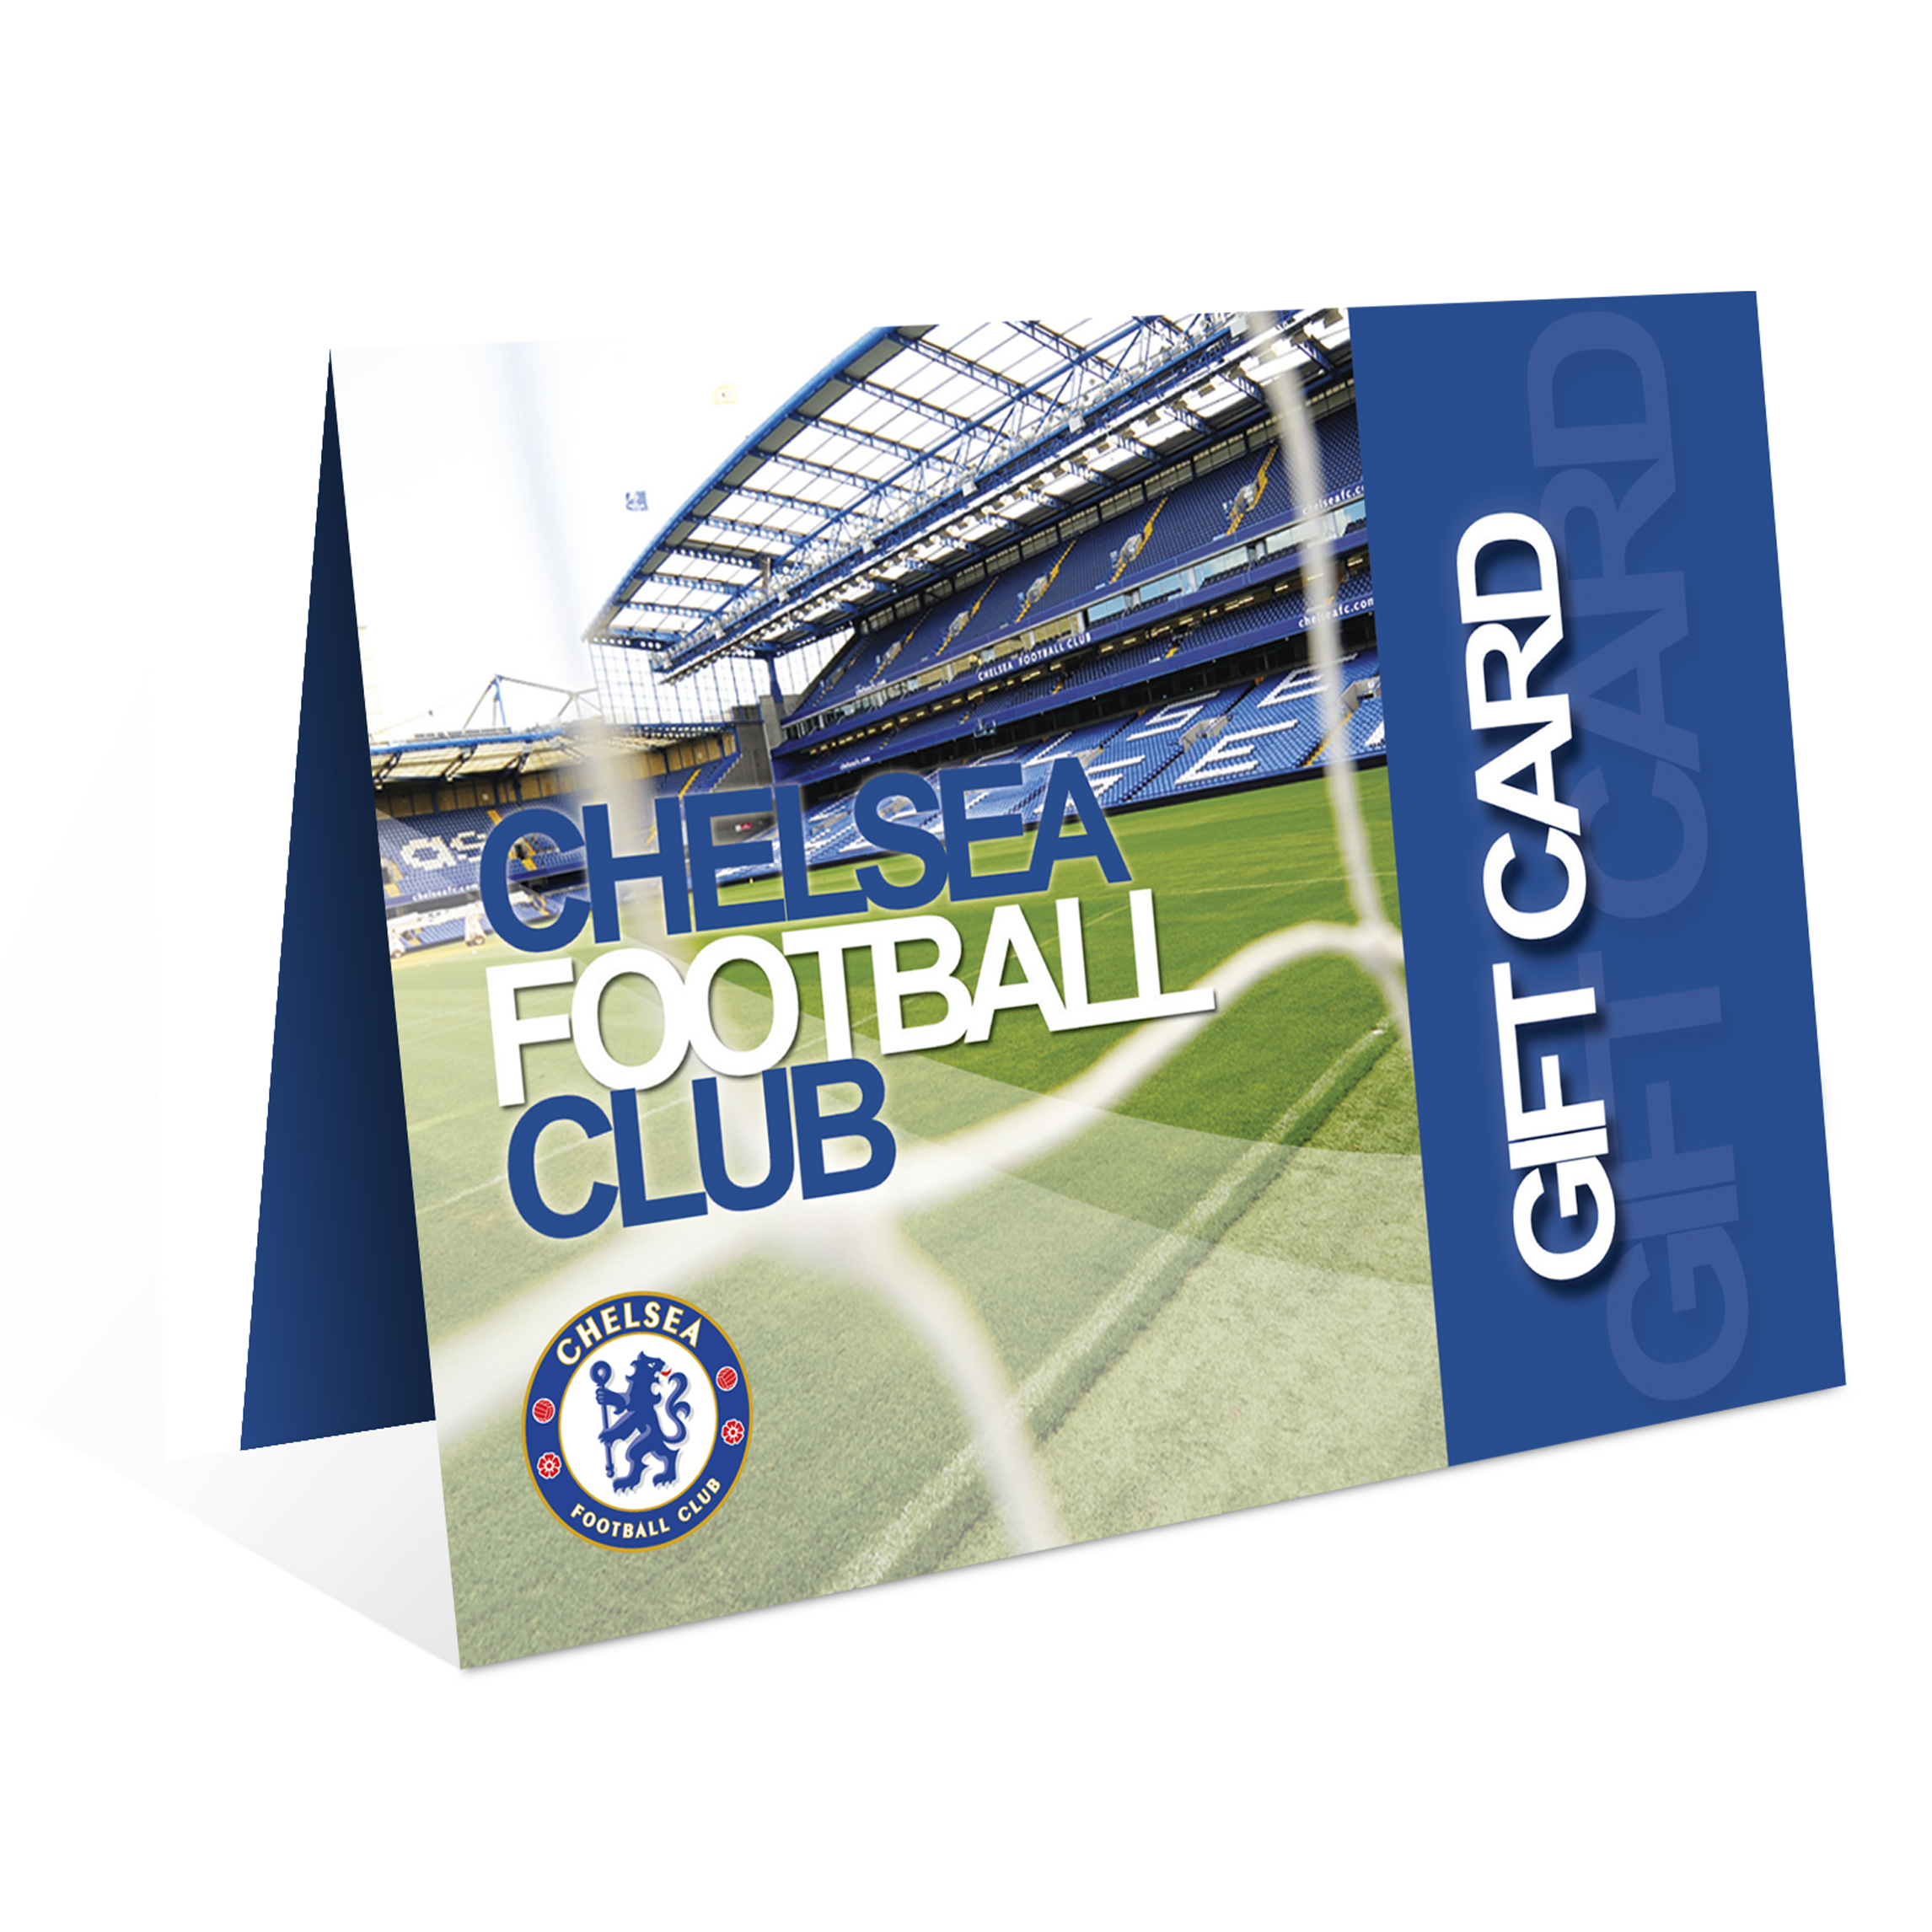 Chelsea Chelsea Football Club Gift Card - Value 50